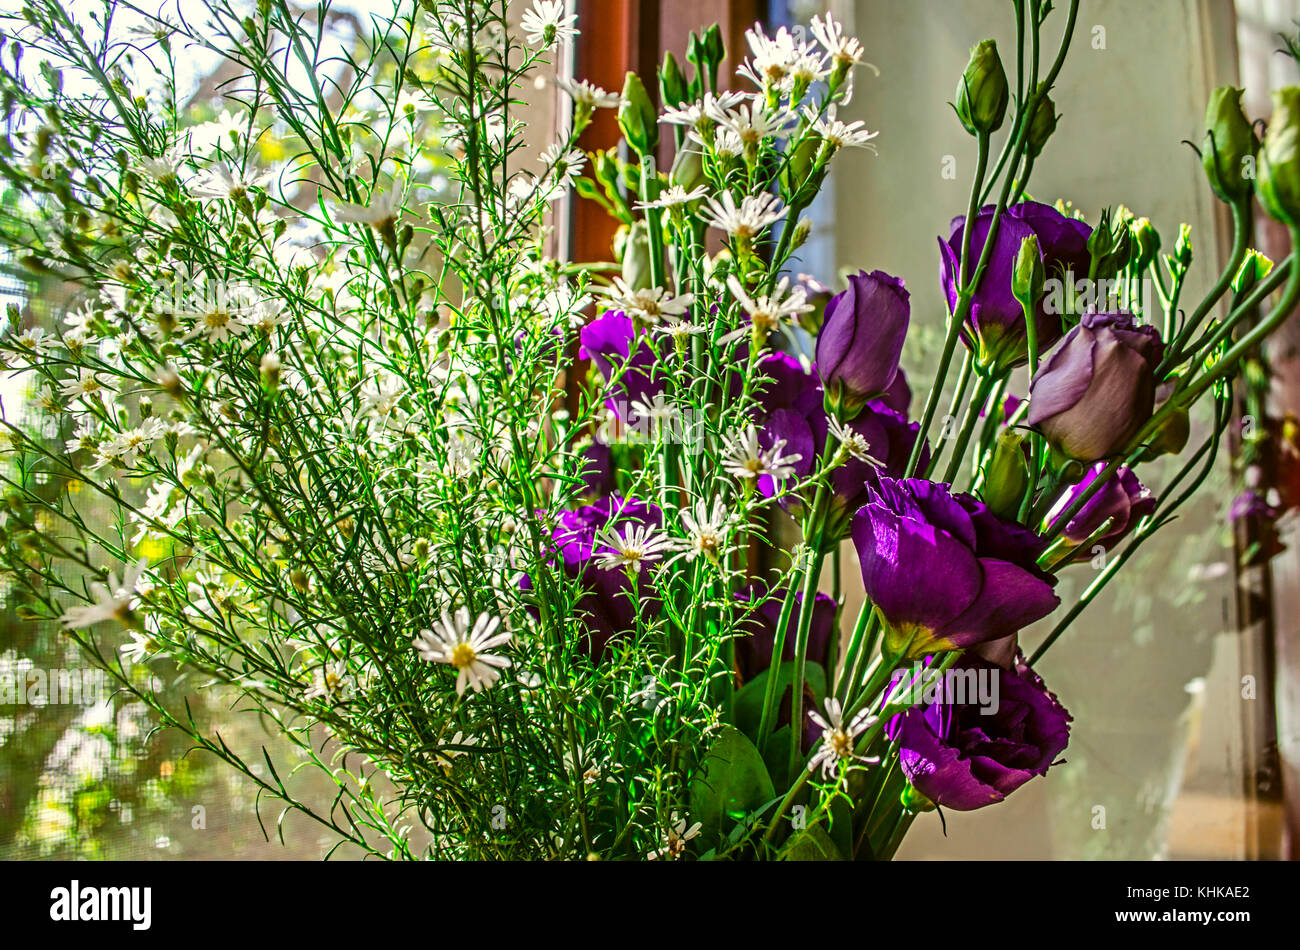 Purple flowers Lisianthus and branches delicate white wildflowers on the windowsill on a bright sunny day - Stock Image